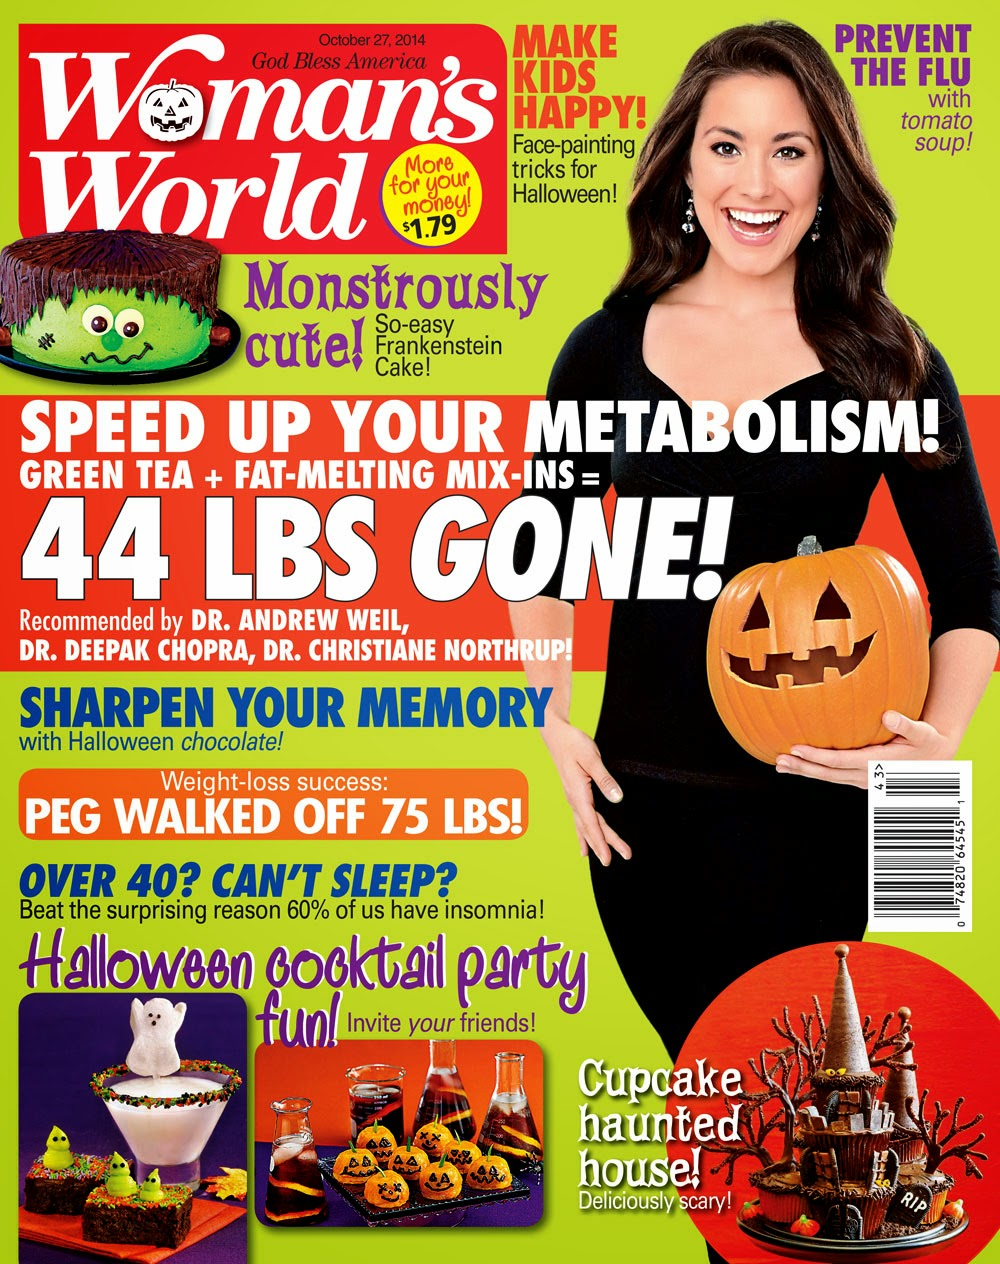 My cake on the cover of Woman's World magazine!